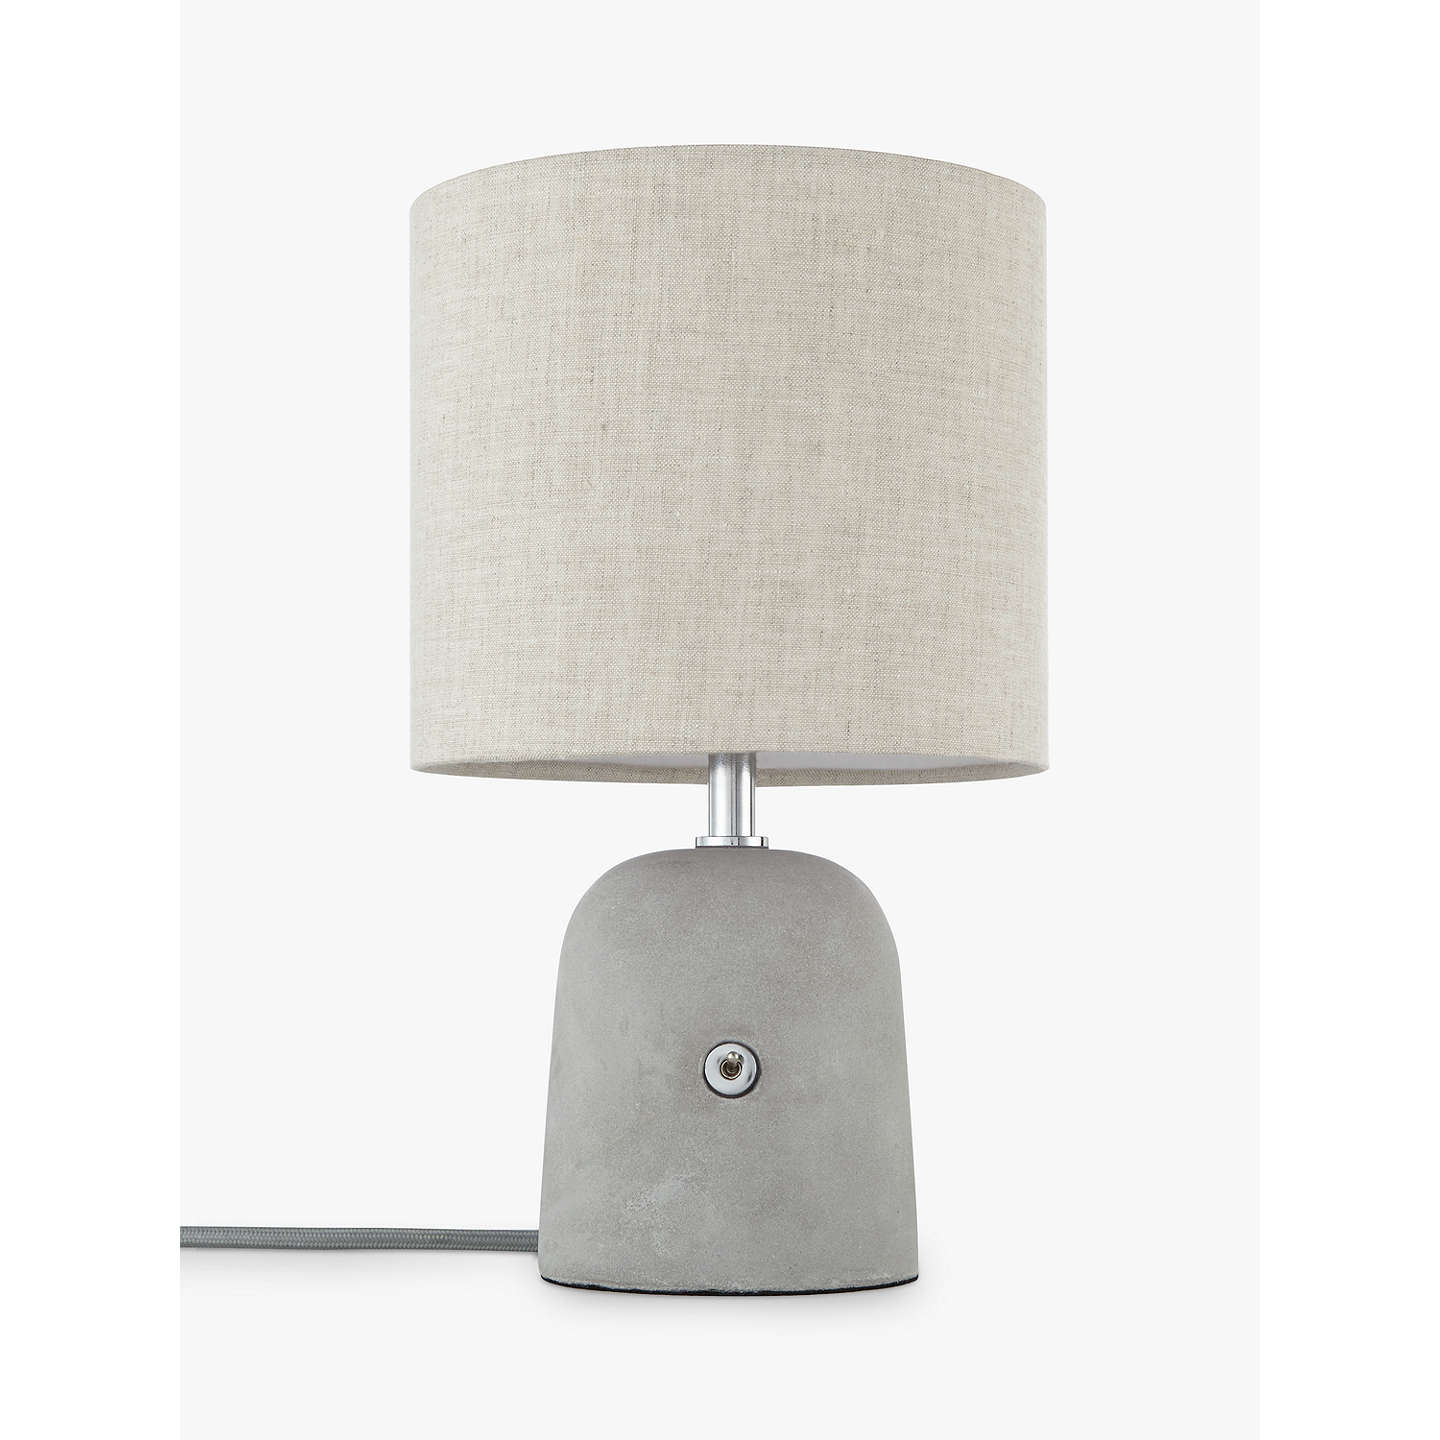 BuyJohn Lewis Meryl Concrete Switch Table Lamp, Grey Online at johnlewis.com